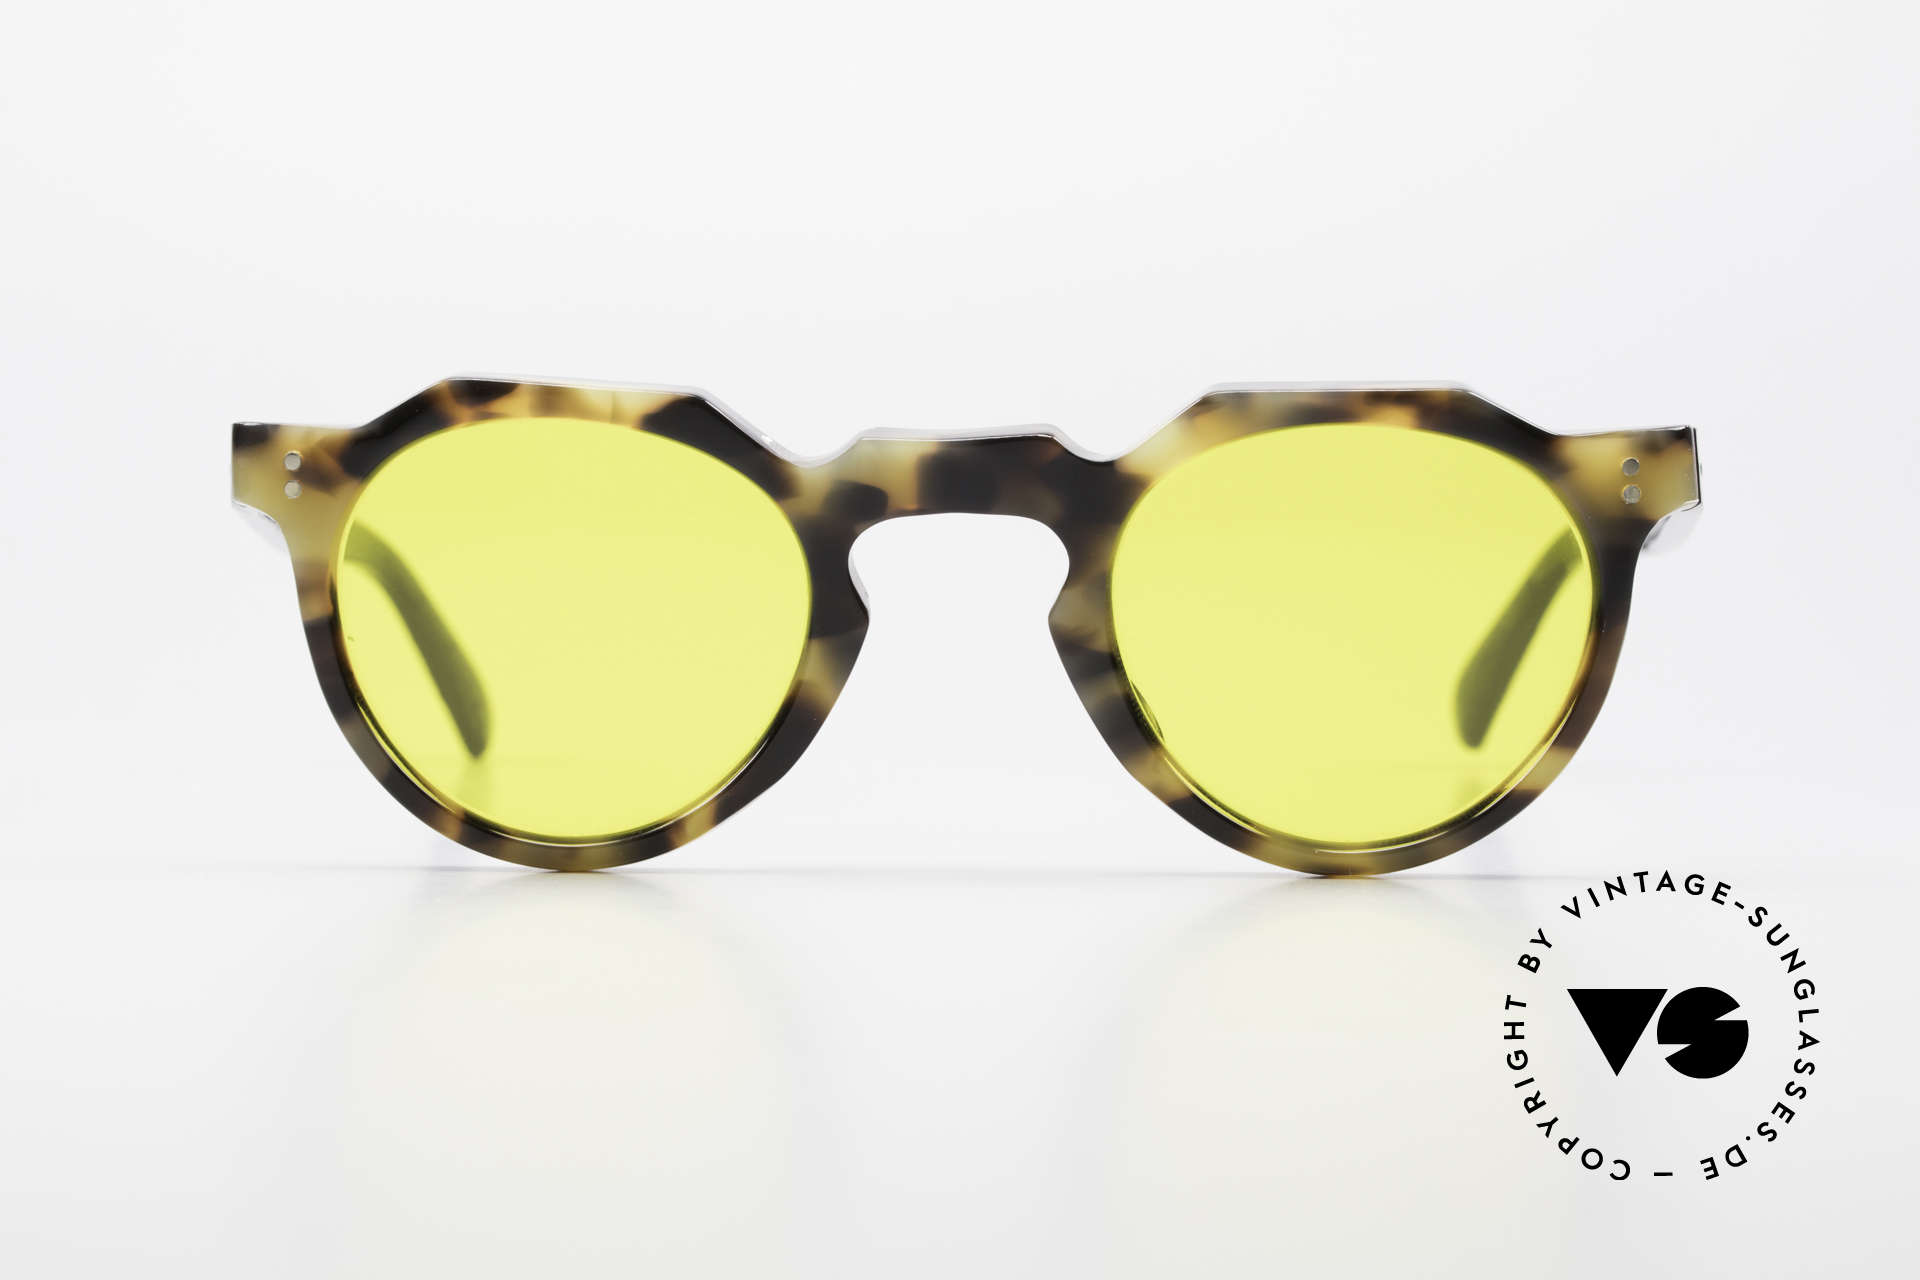 Lesca Panto 6mm 60's Panto Sunglasses France, very massive frame (6mm thick profil); built to last!, Made for Men and Women